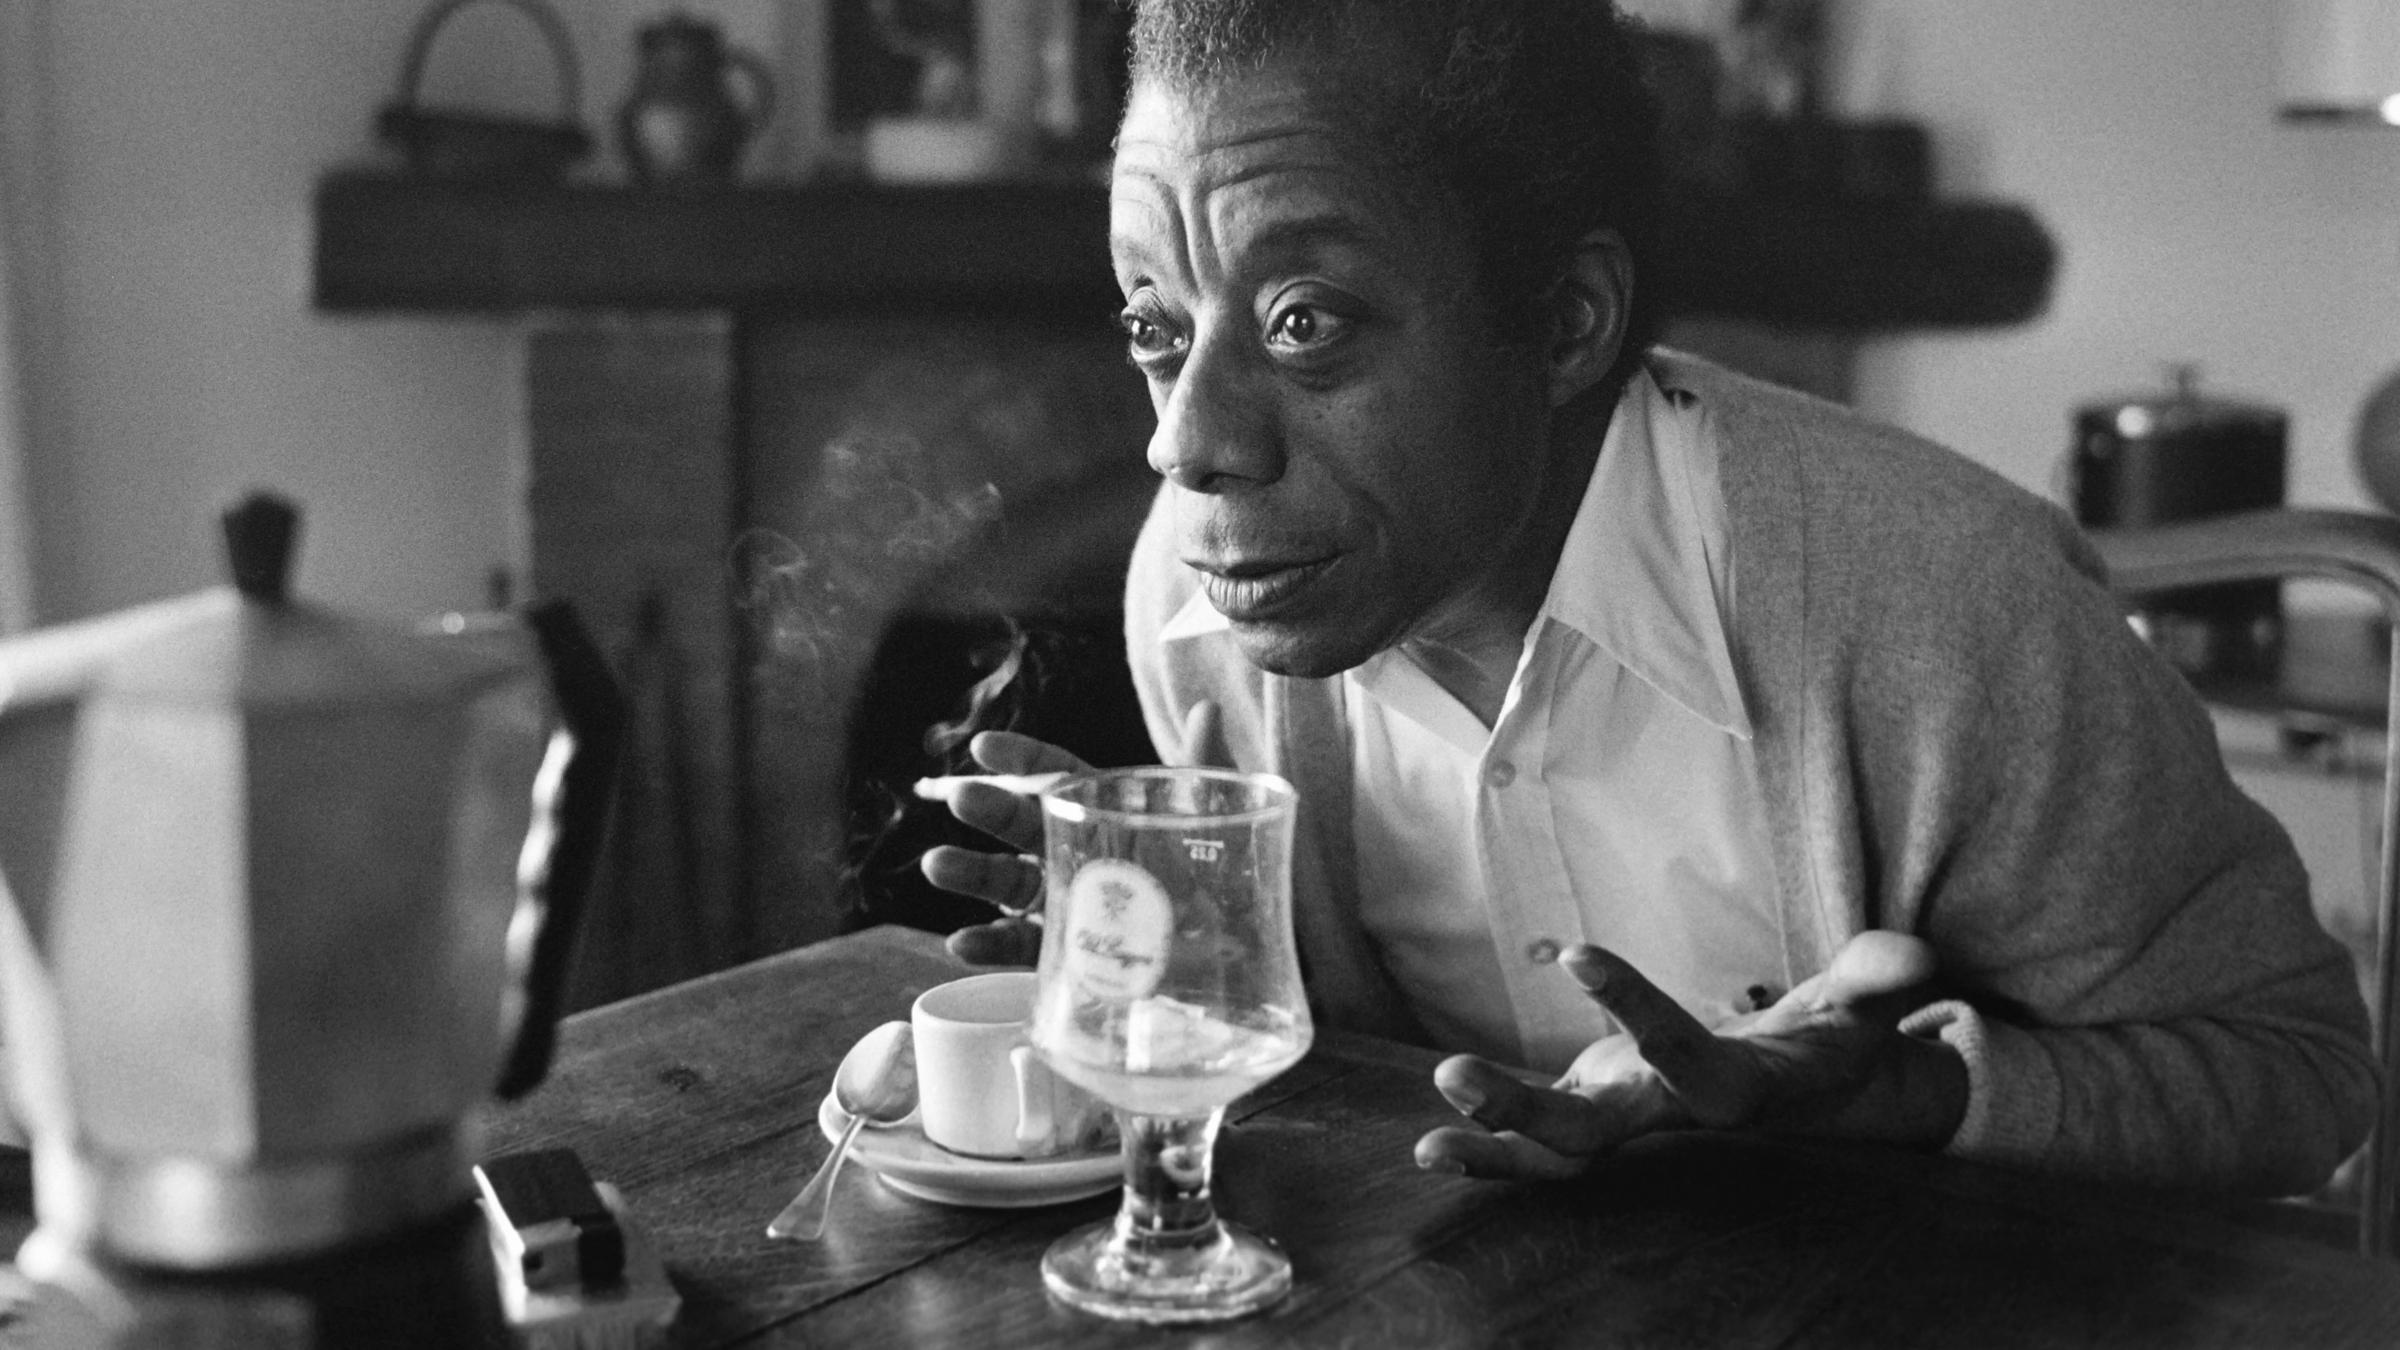 director raoul peck james baldwin was speaking directly to me james baldwin poses at his home in saint paul de vence in 1979